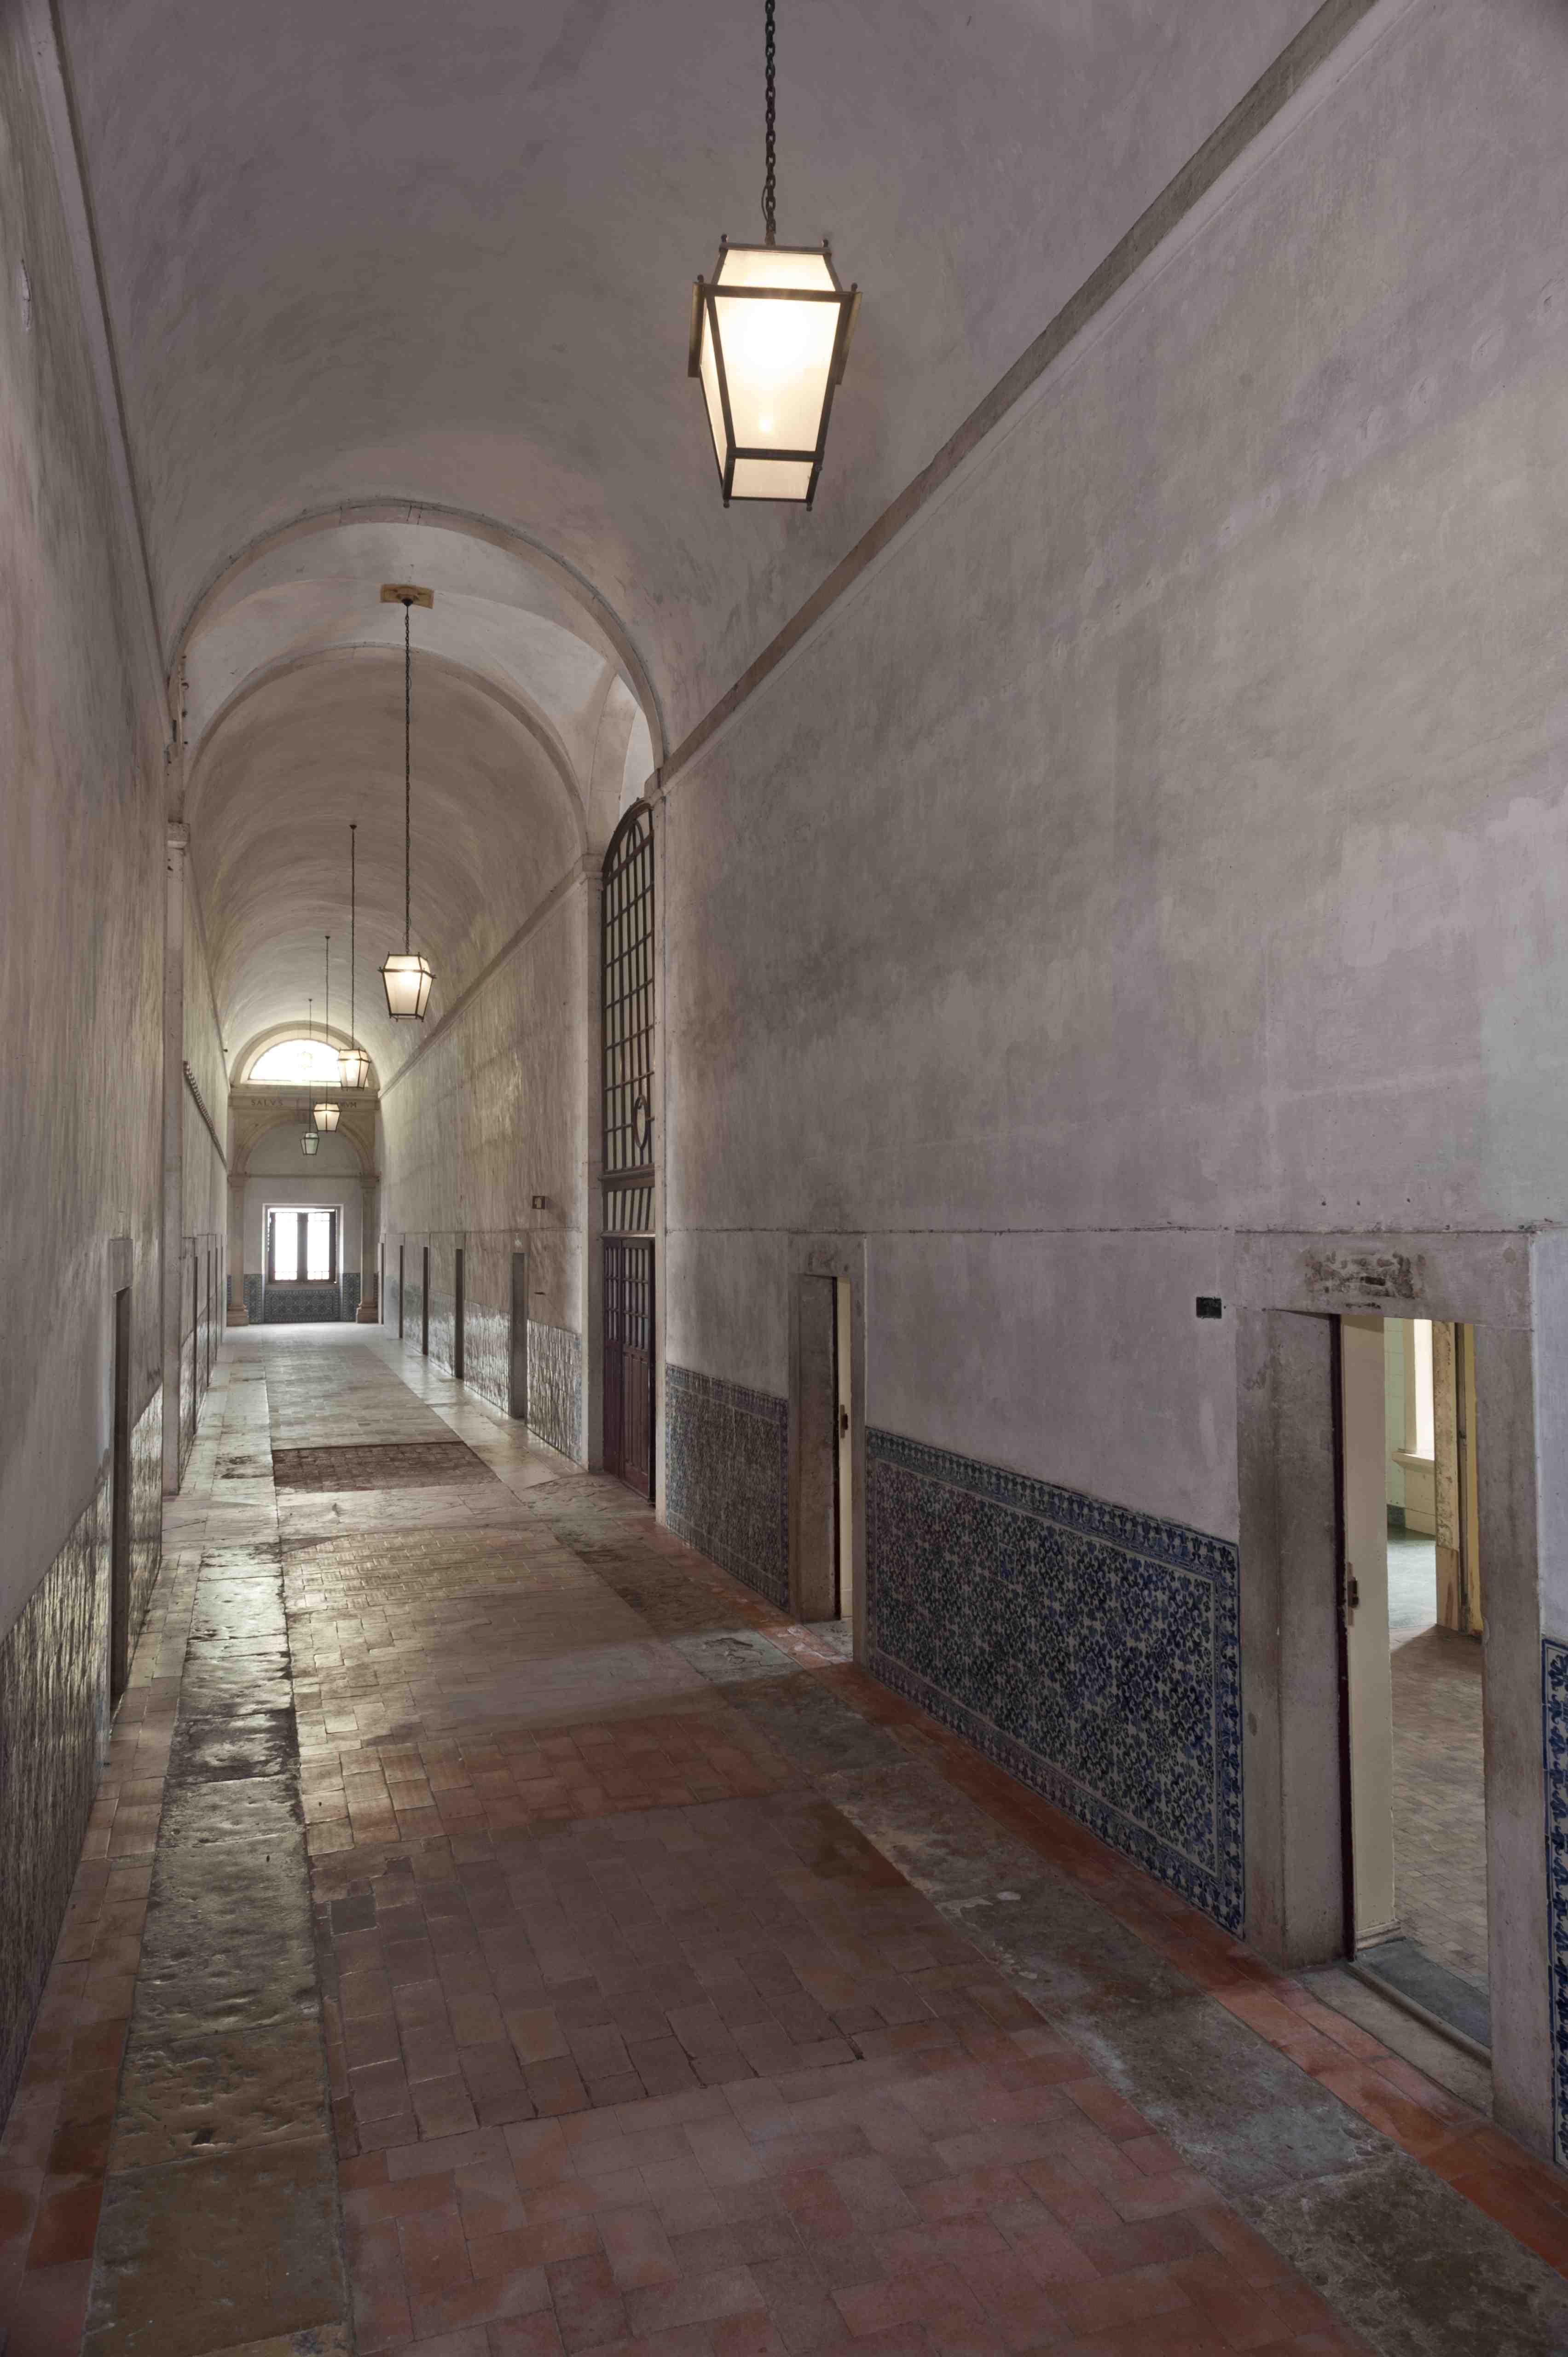 View of the corridor of the Hall of Infirmary of Convent of Christ